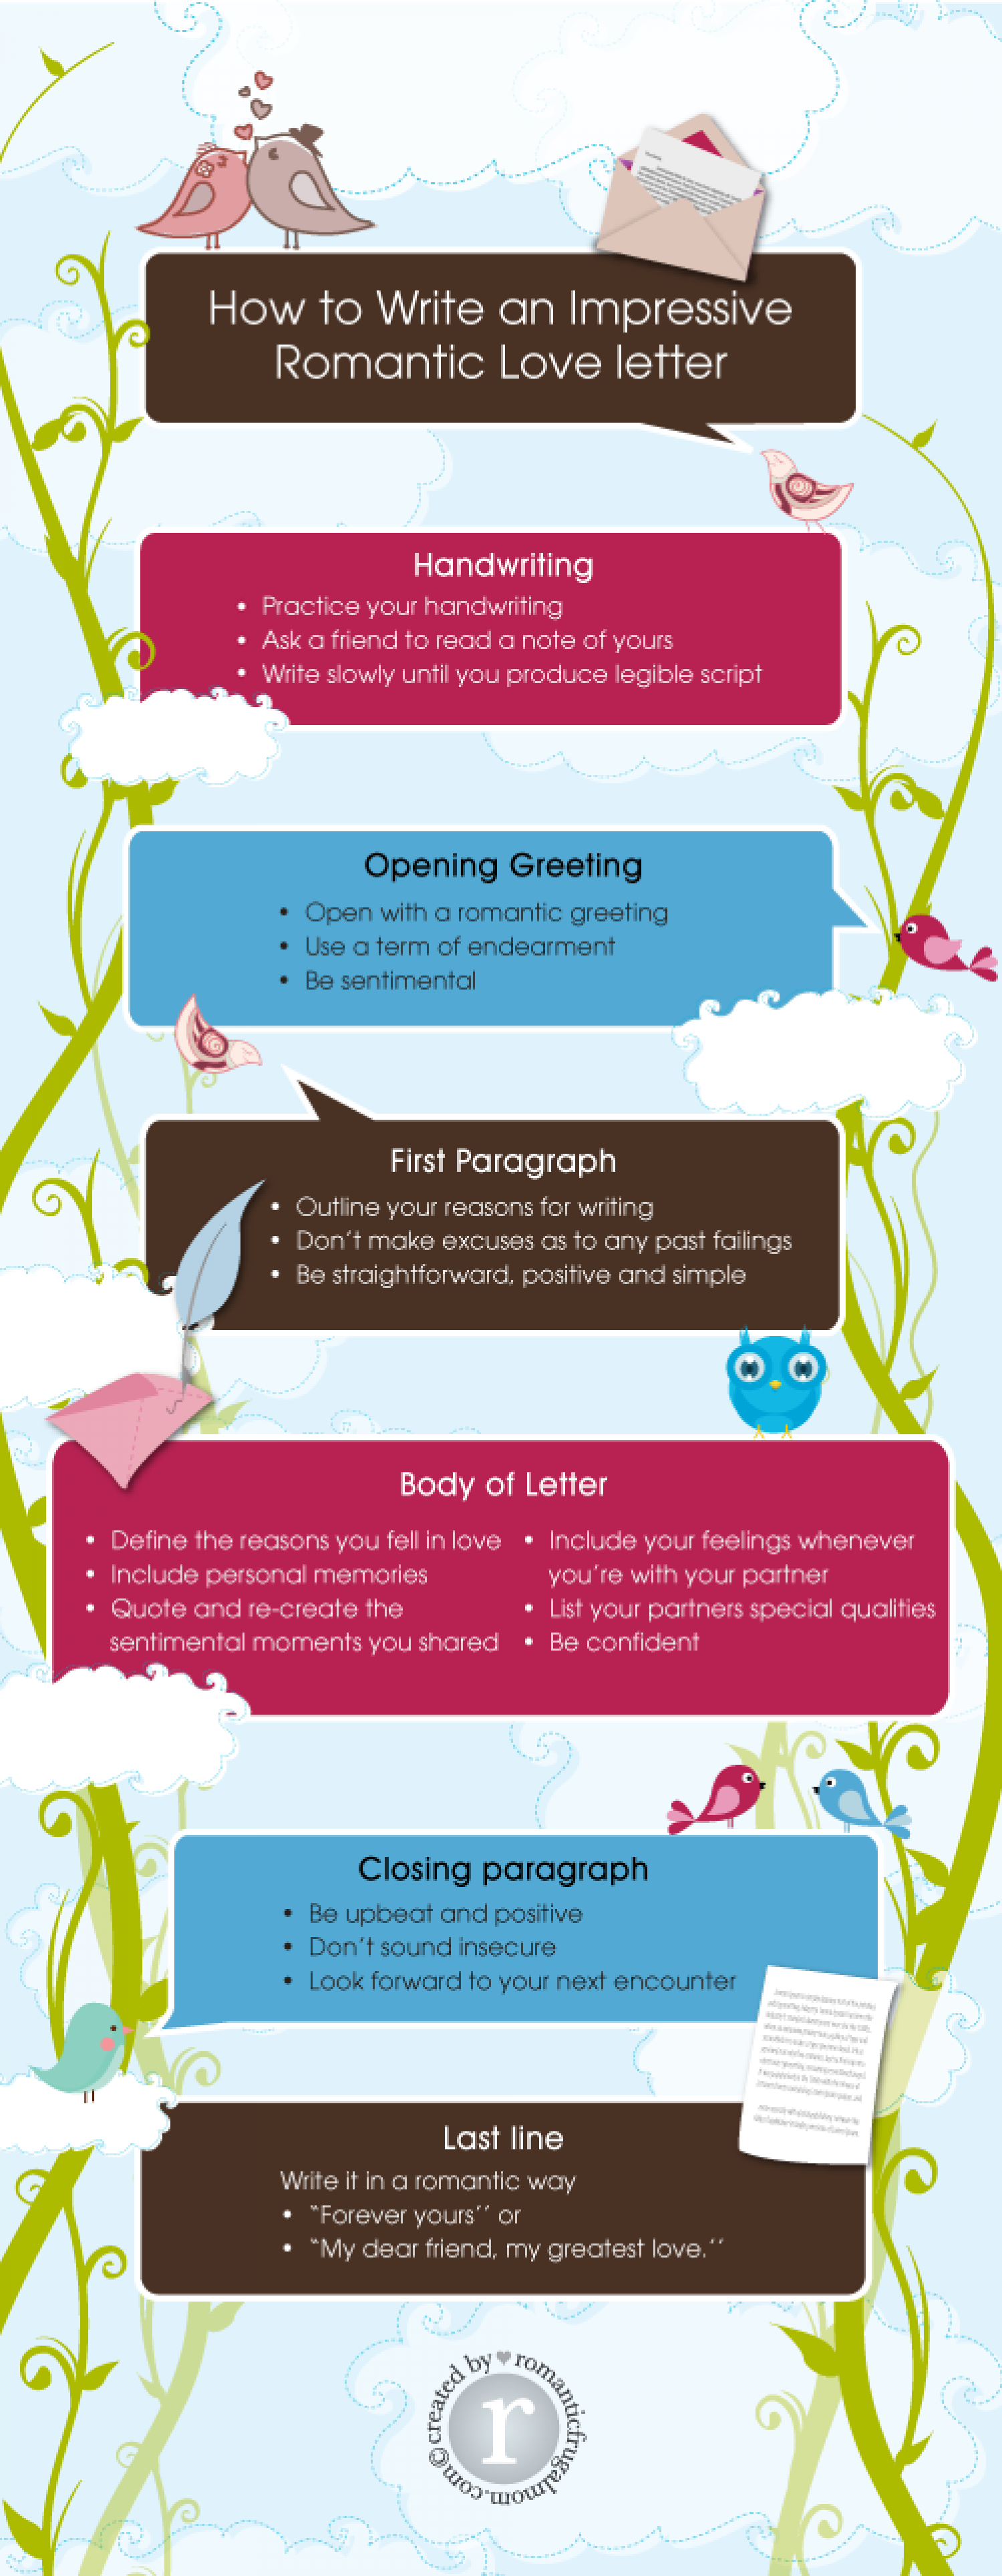 How to write an impressive romantic love letter visual how to write an impressive romantic love letter infographic expocarfo Image collections